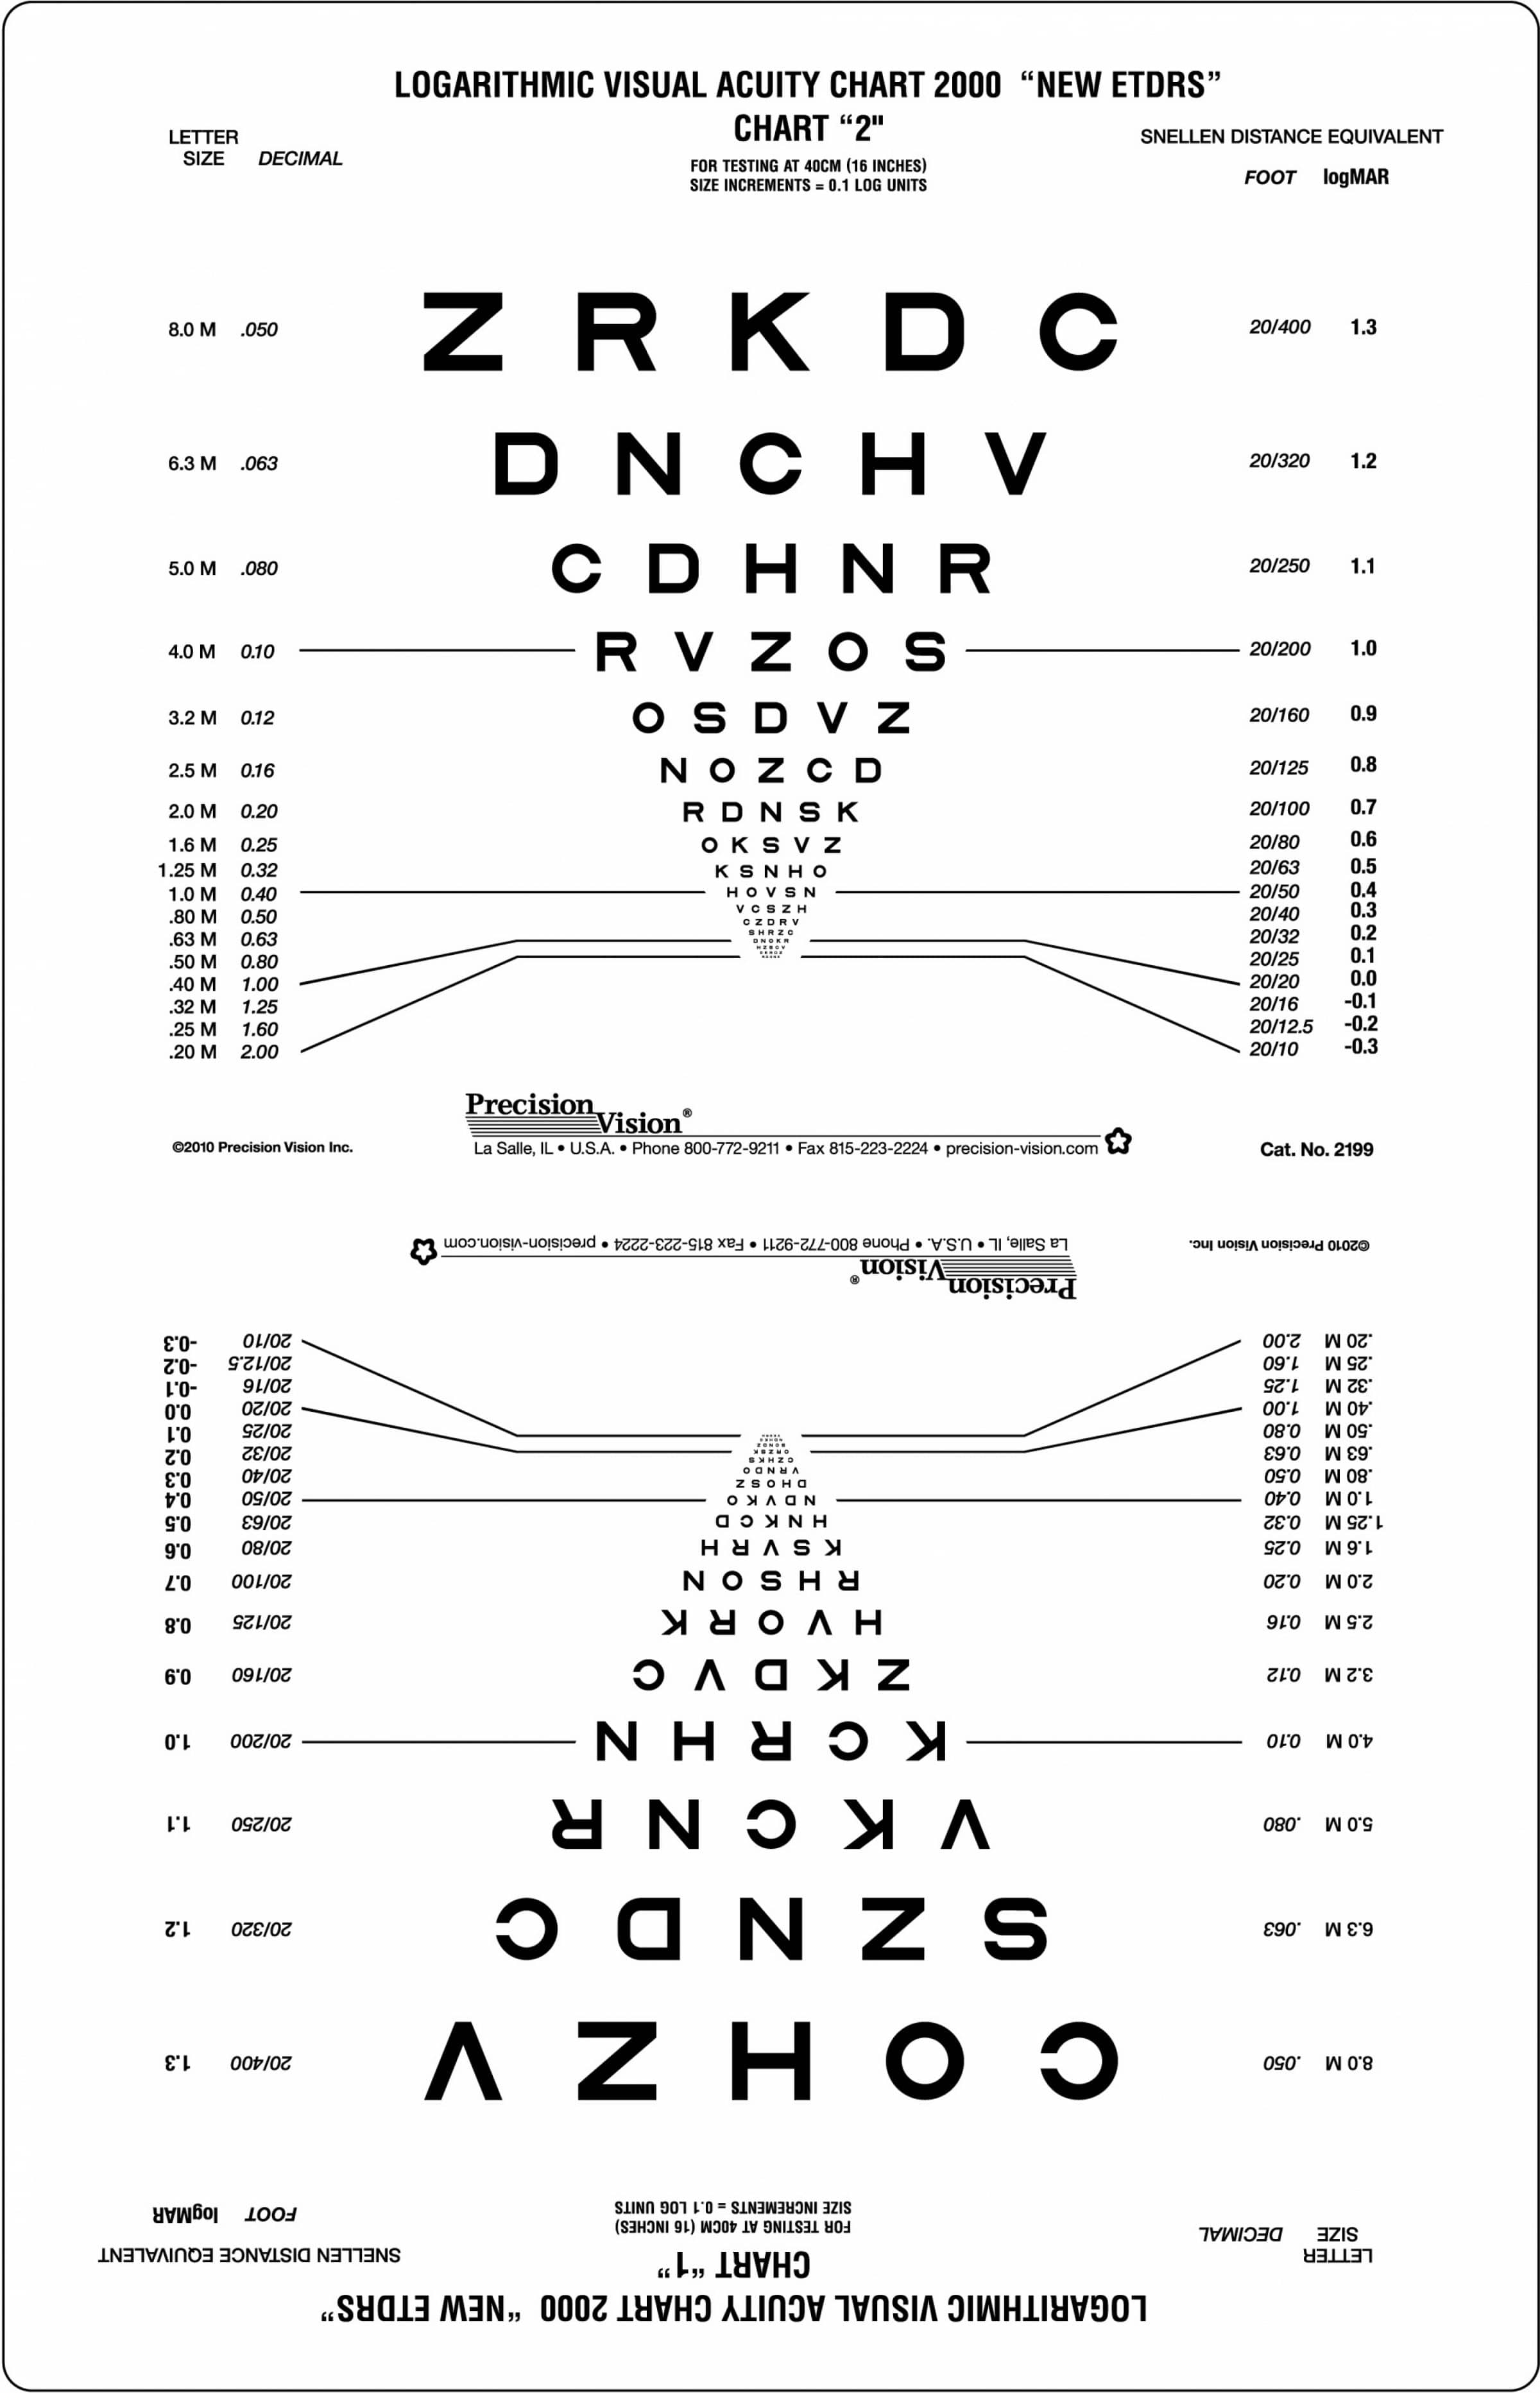 Near Vision Reading Charts Precision Vision